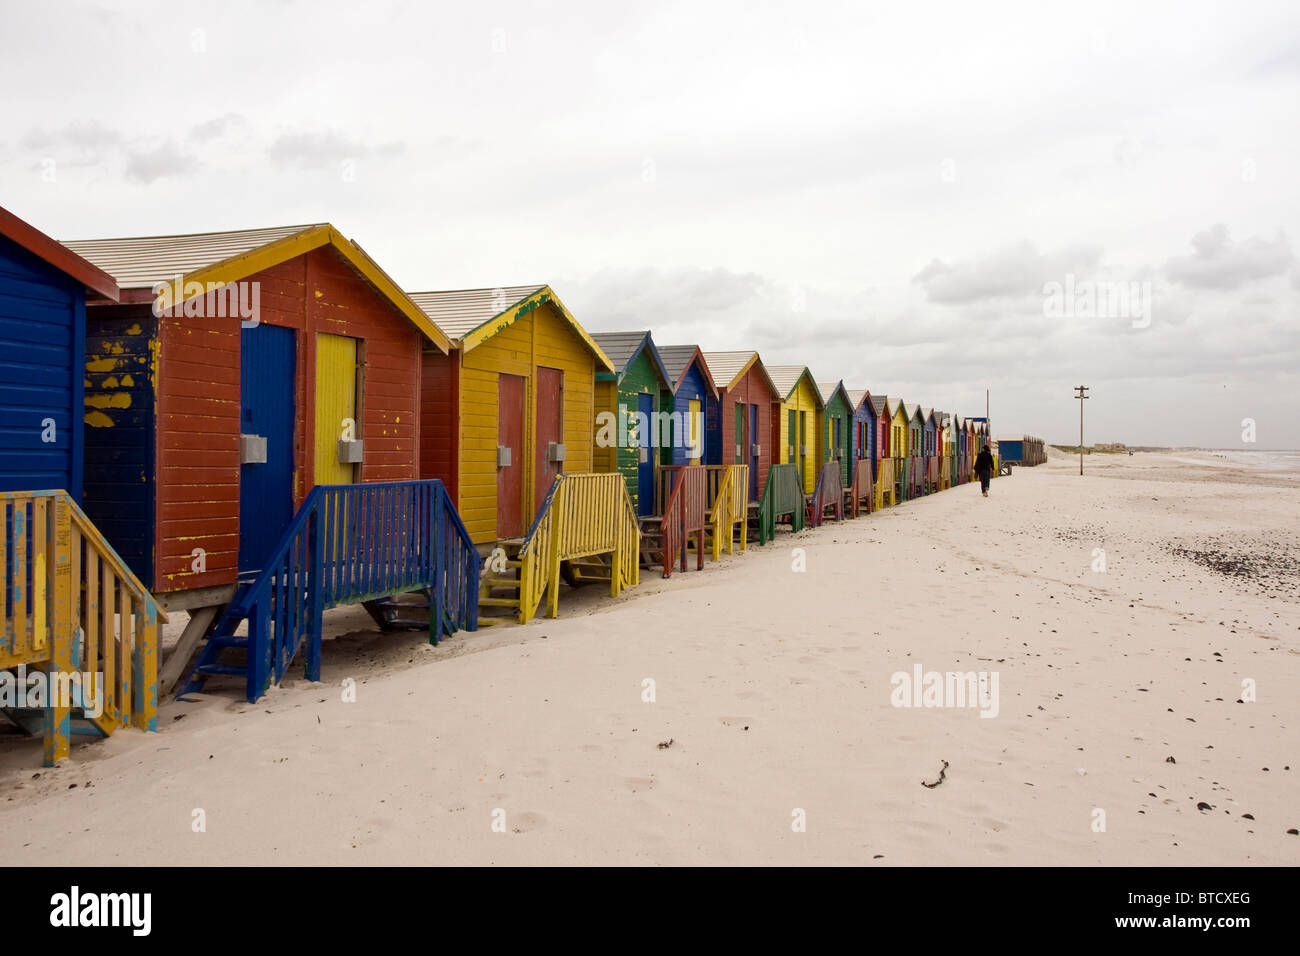 Multi coloured beach huts in Muizenberg, Cape Town, on False Bay coast, South Africa - Stock Image